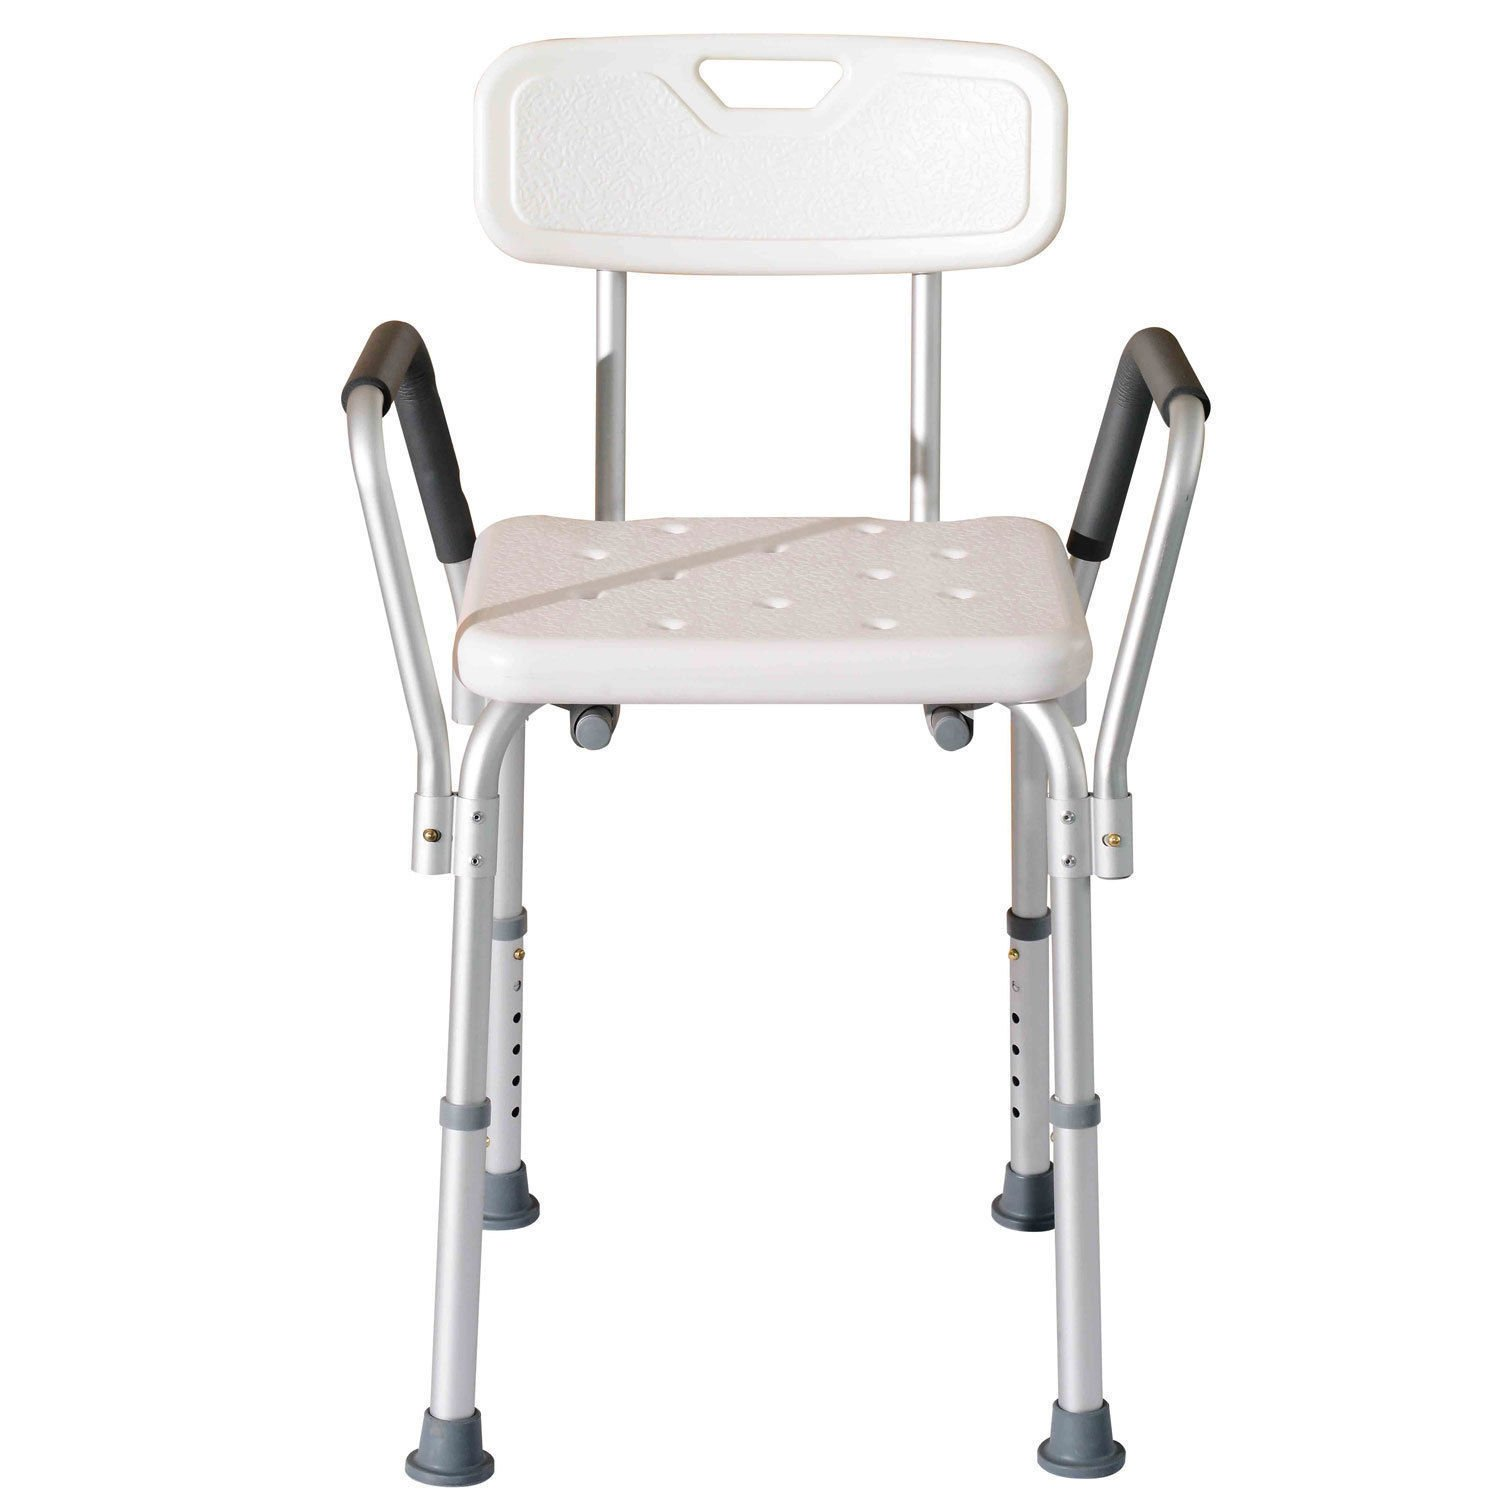 HomCom Adjustable Height Mobility Medical Grade Shower Seat Bath Chair With Removable Arms